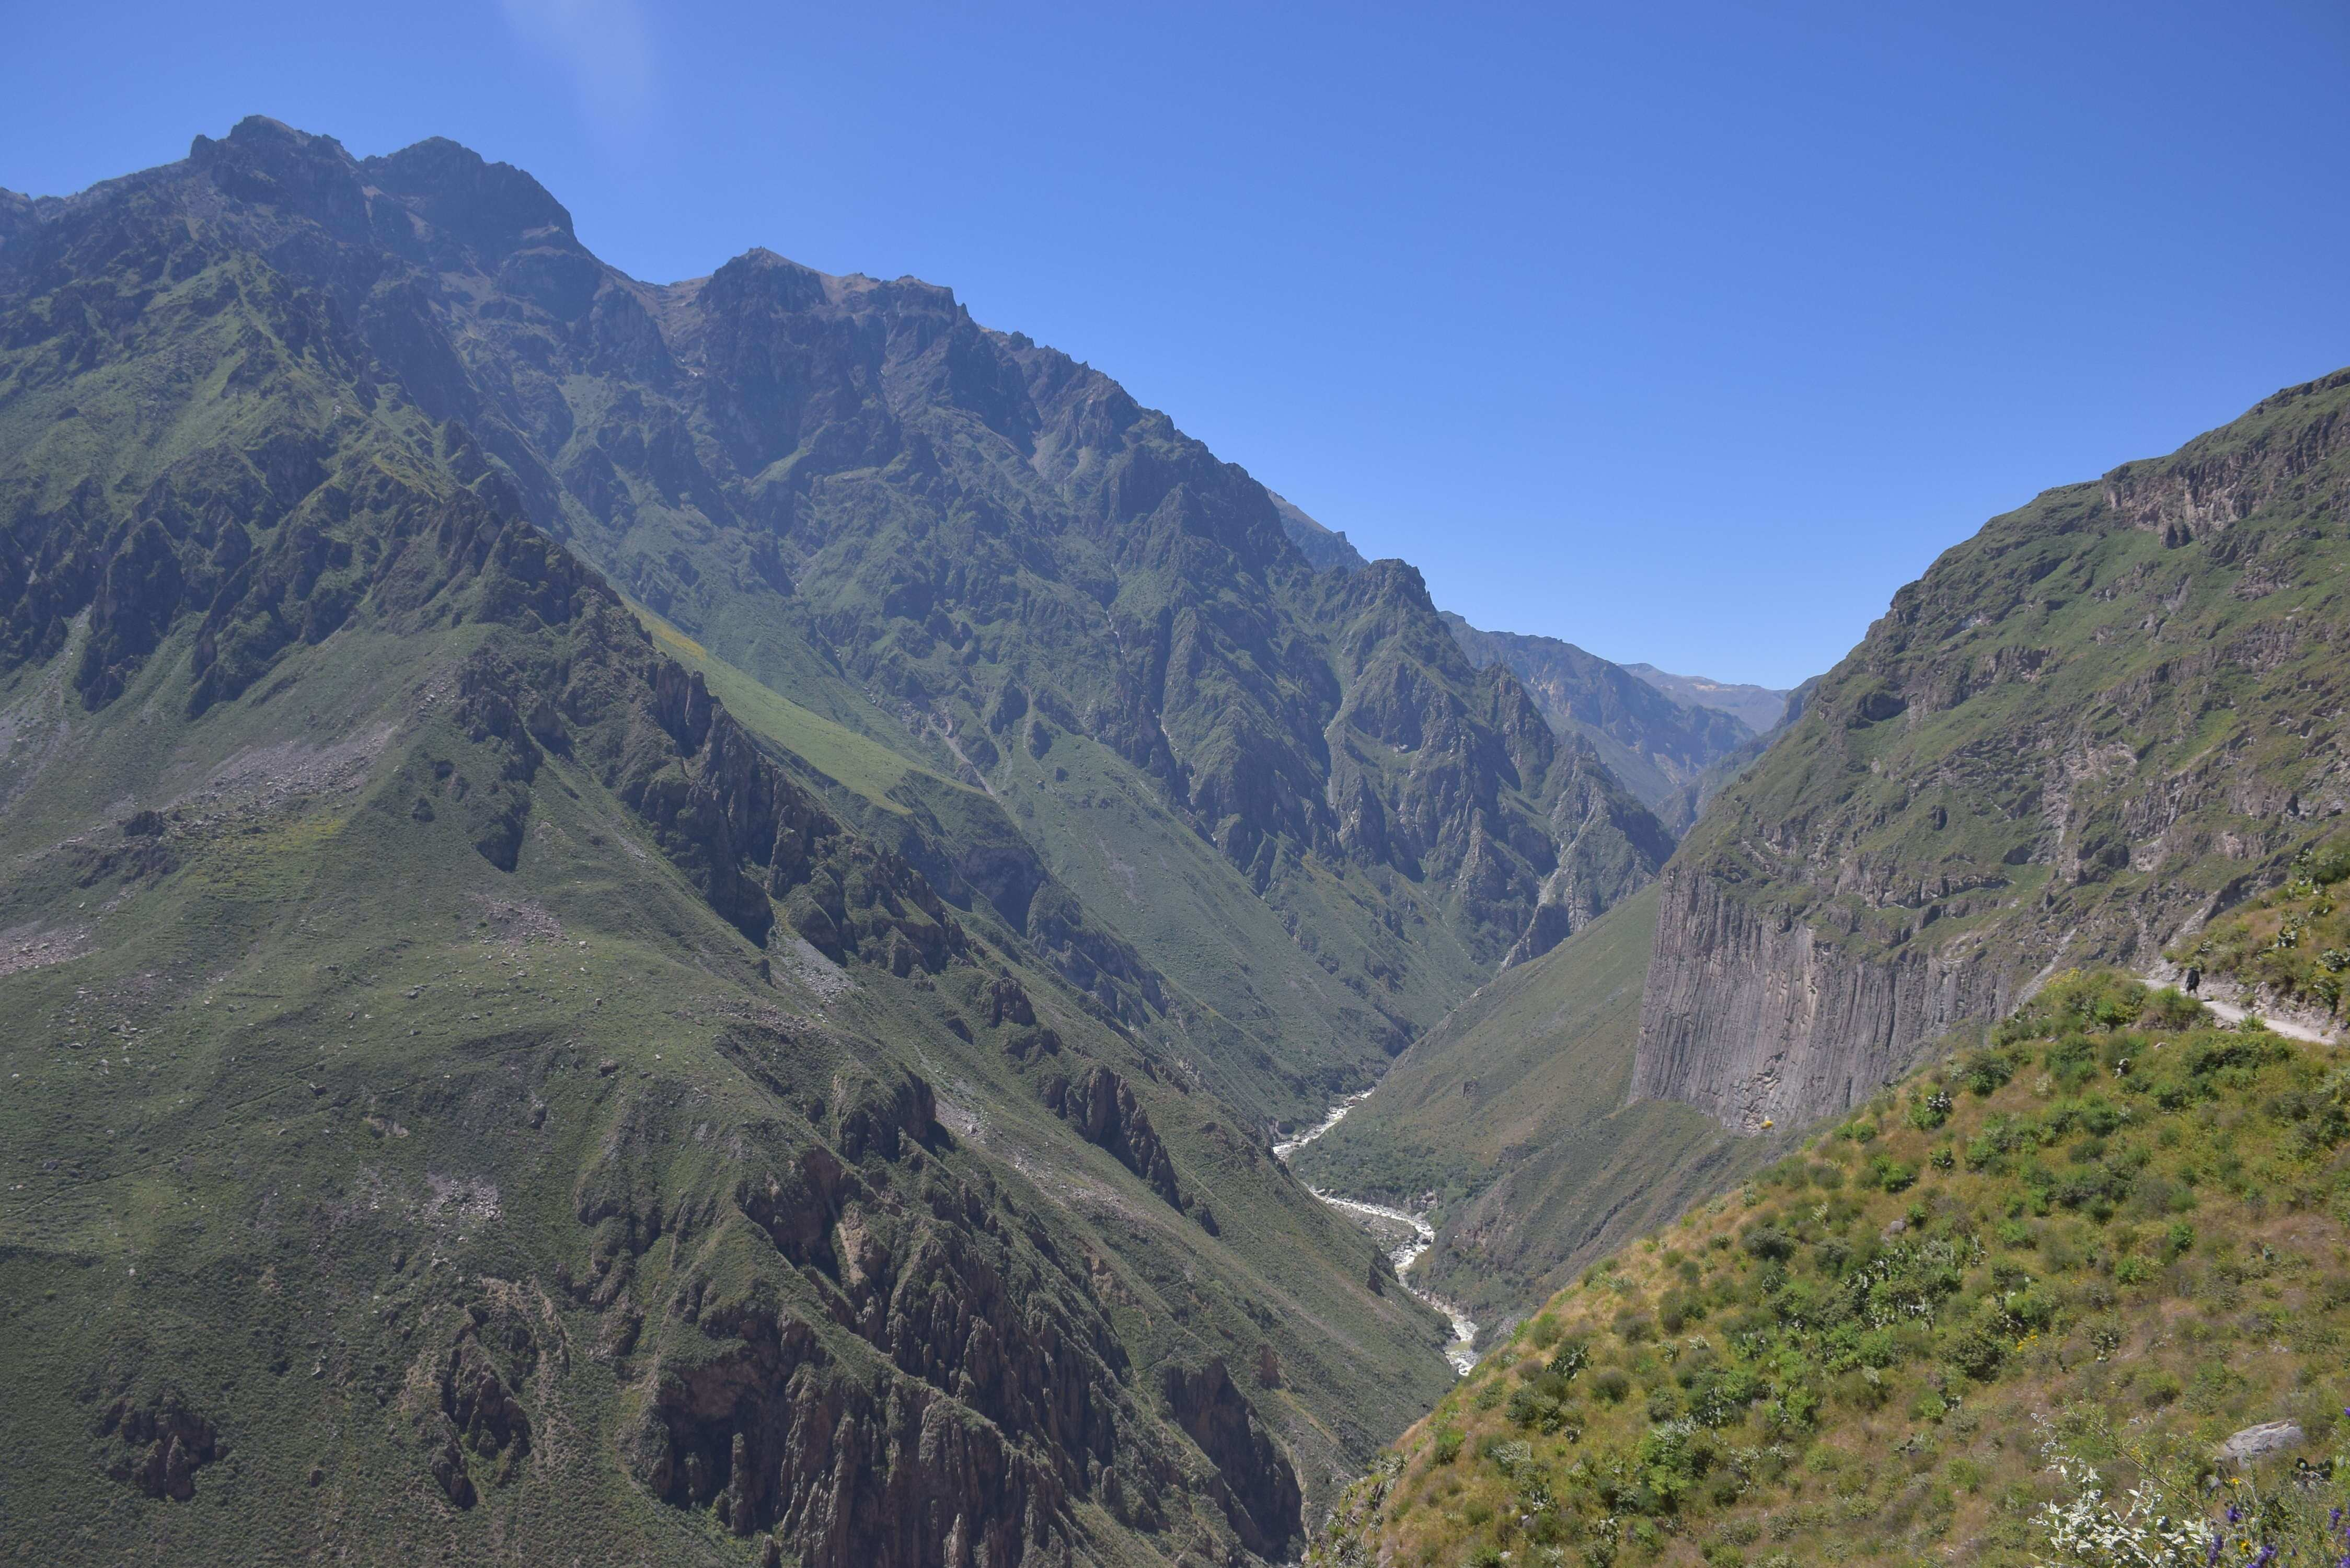 The Colca Canyon Tour